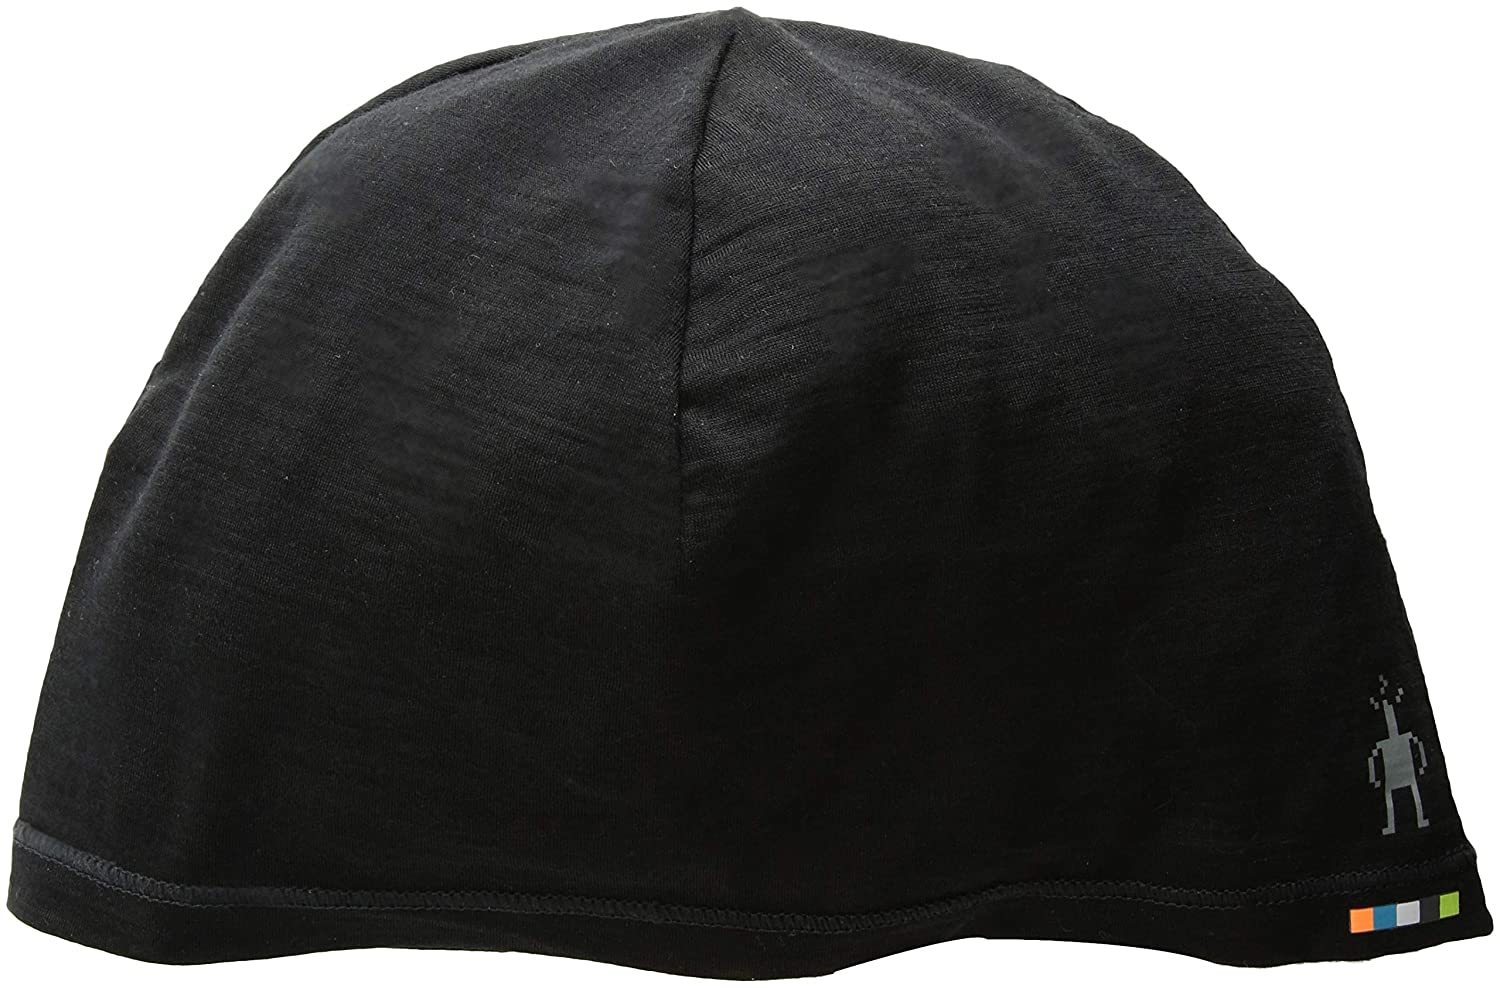 Smartwool Merino 150 Beanie - AW18 - One Black  Amazon.co.uk  Clothing af7fc2b21b7c